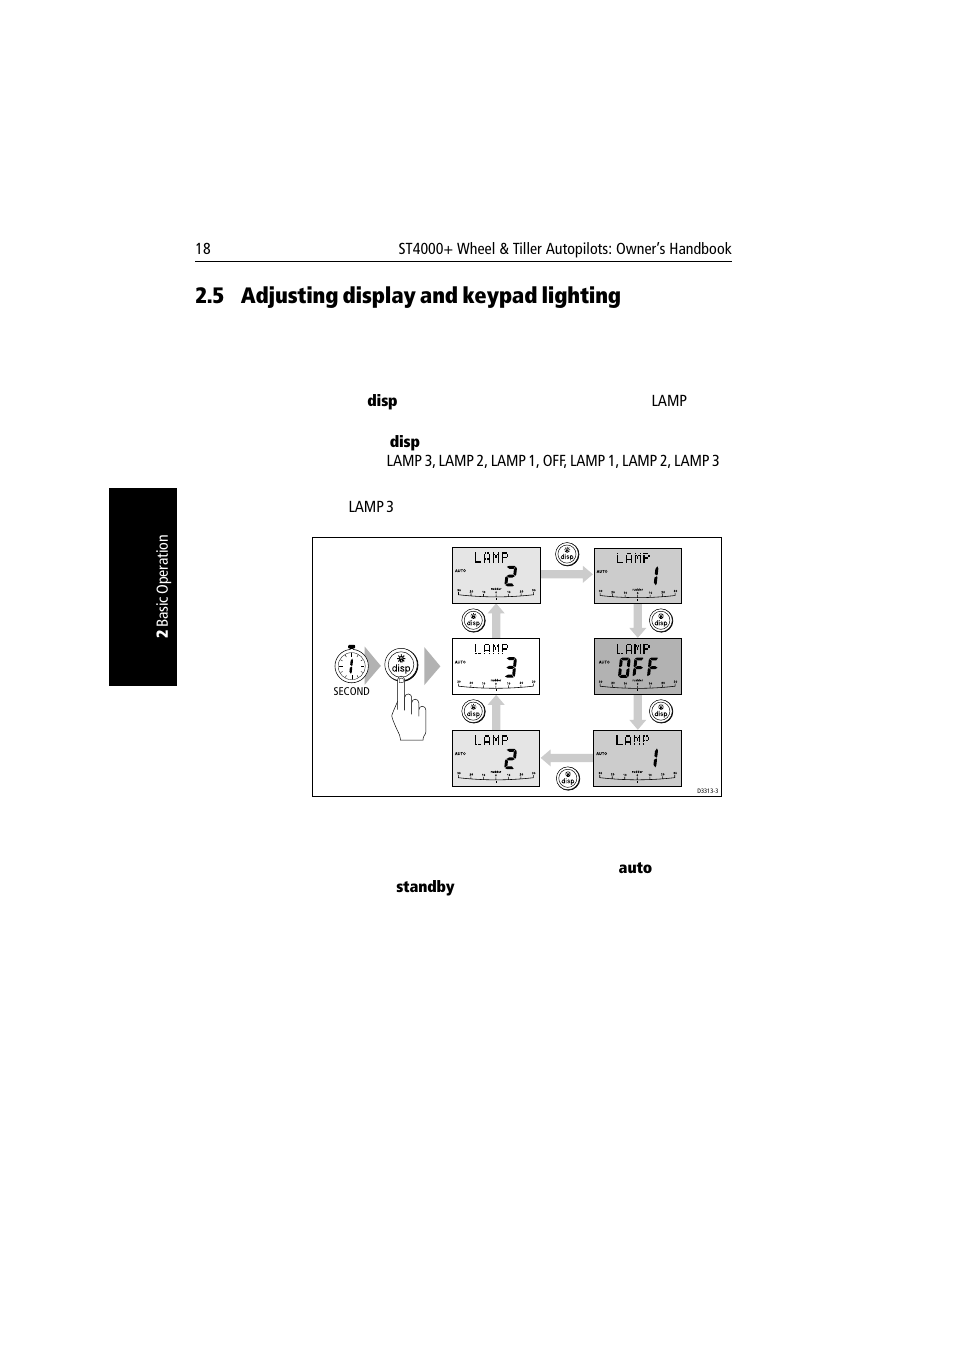 5 adjusting display and keypad lighting, Adjusting display